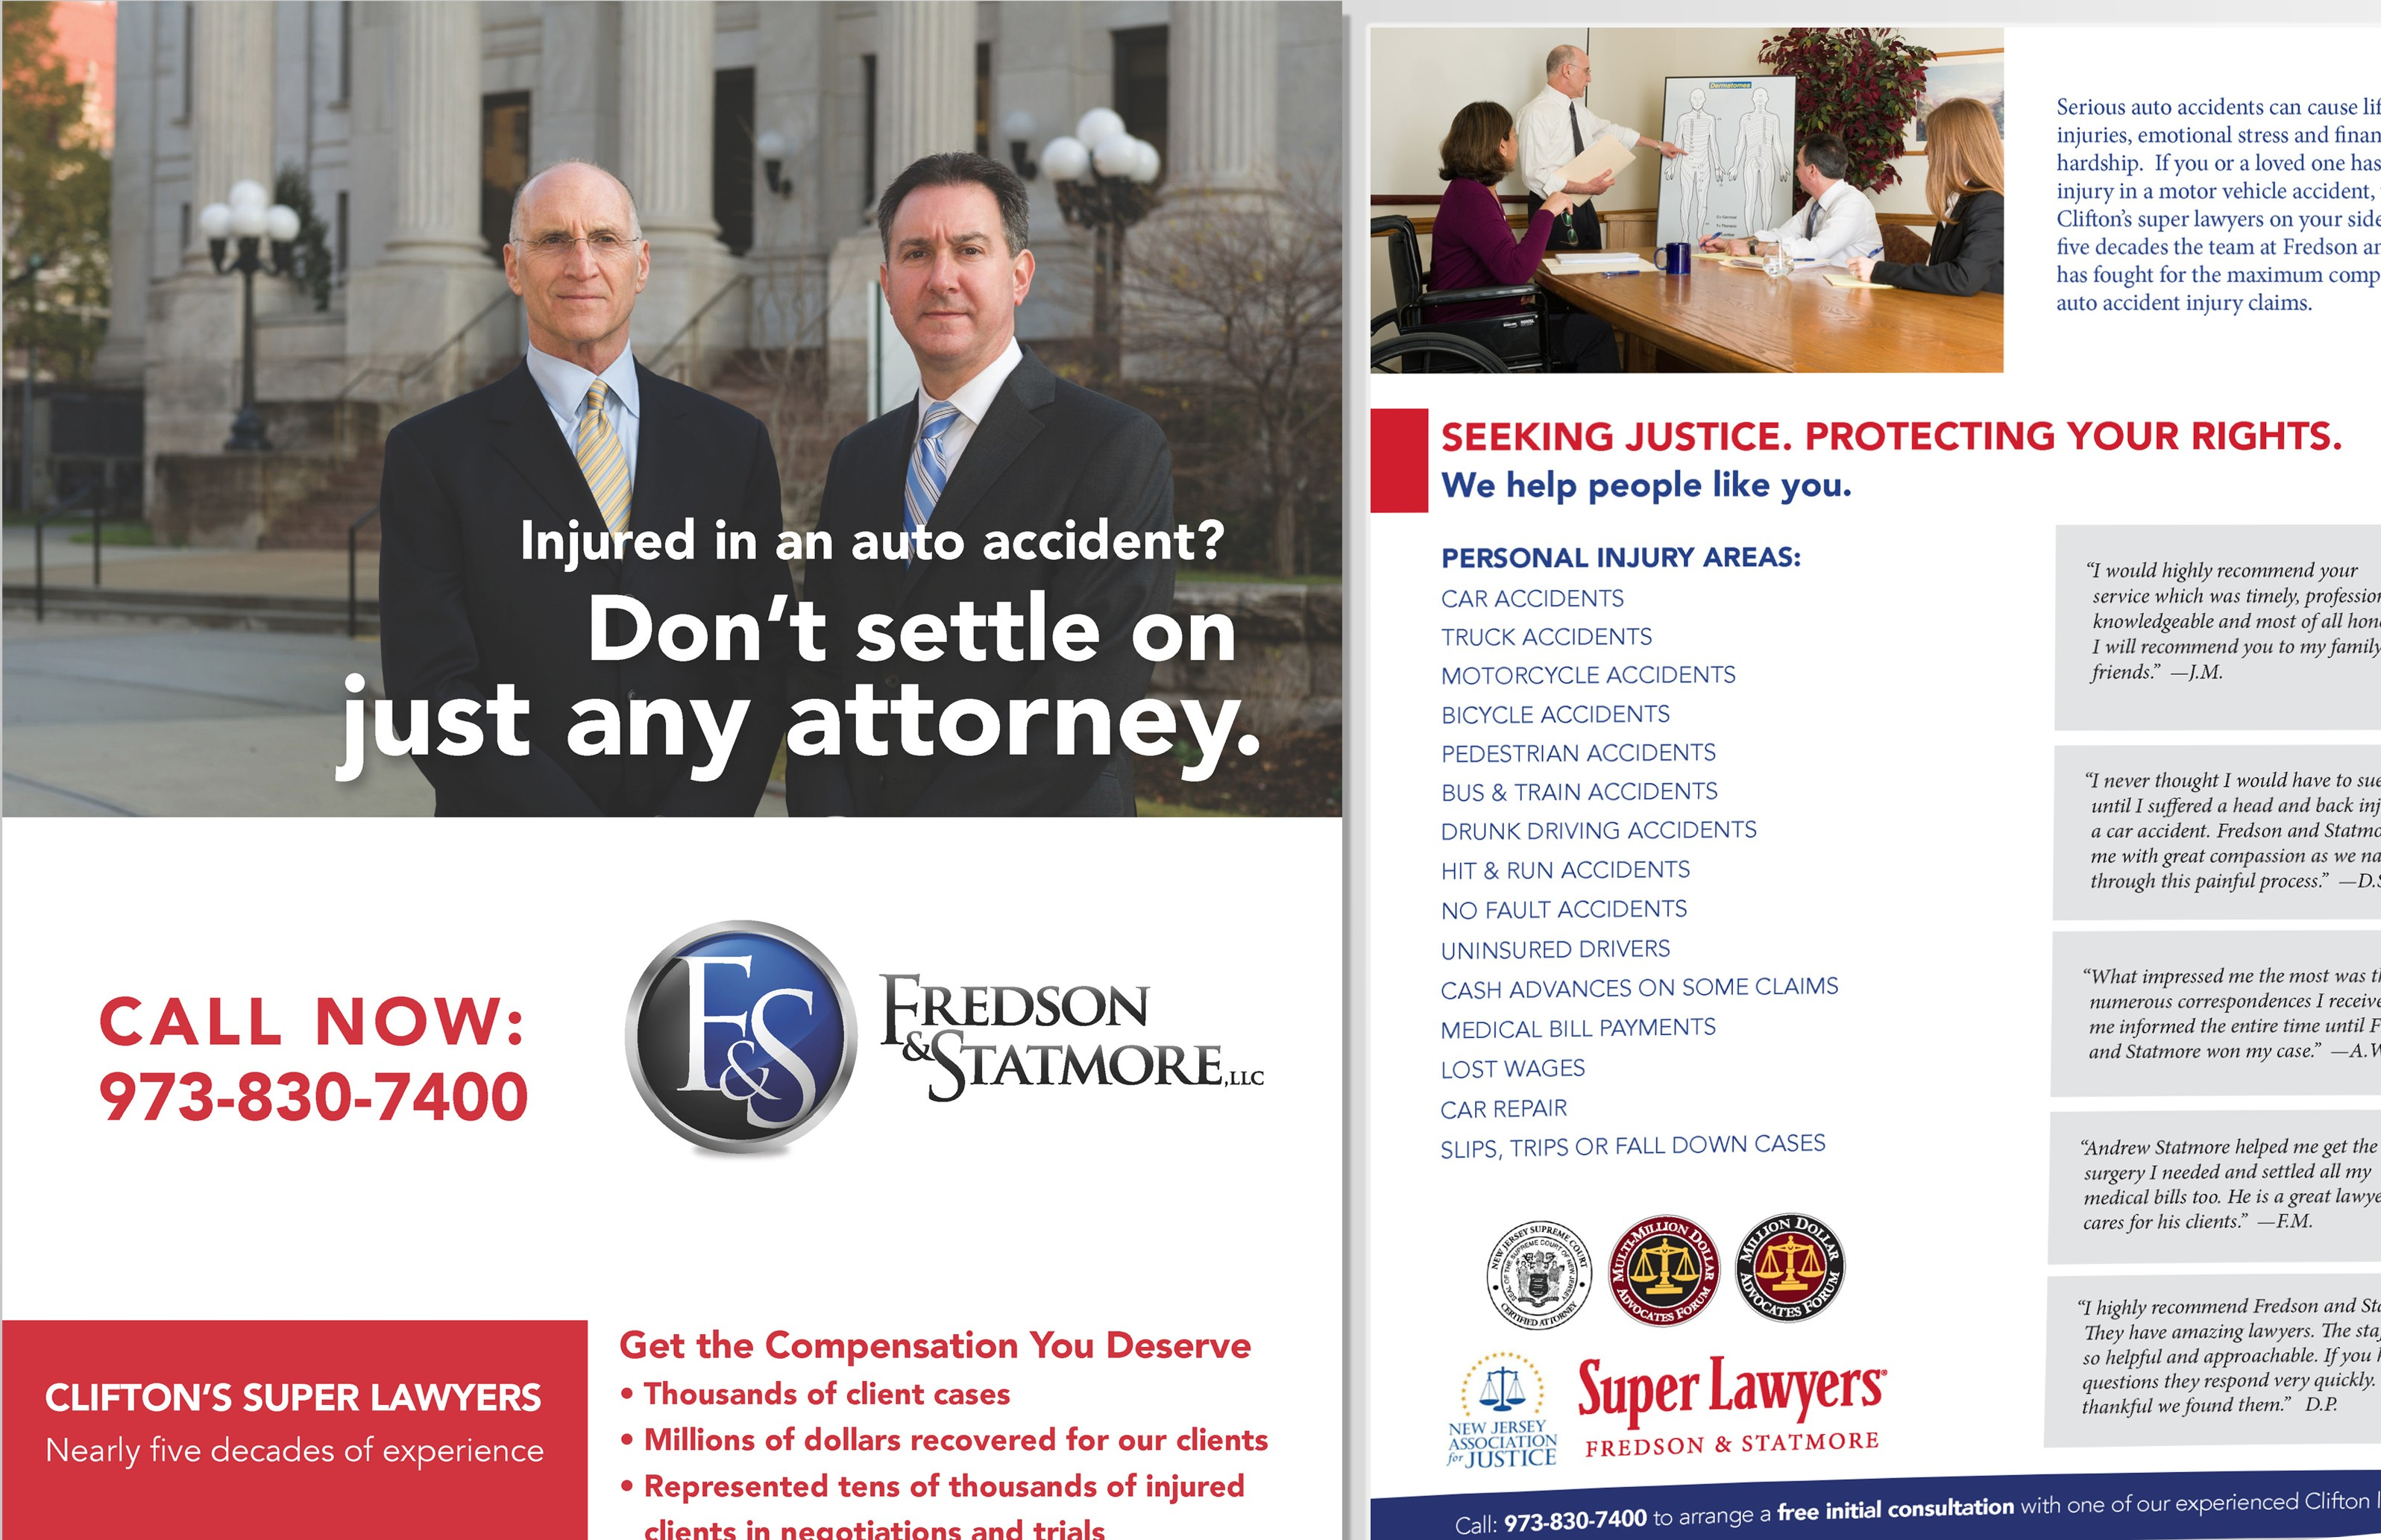 Fredson & Statmore, LLC Direct Mail Campaign